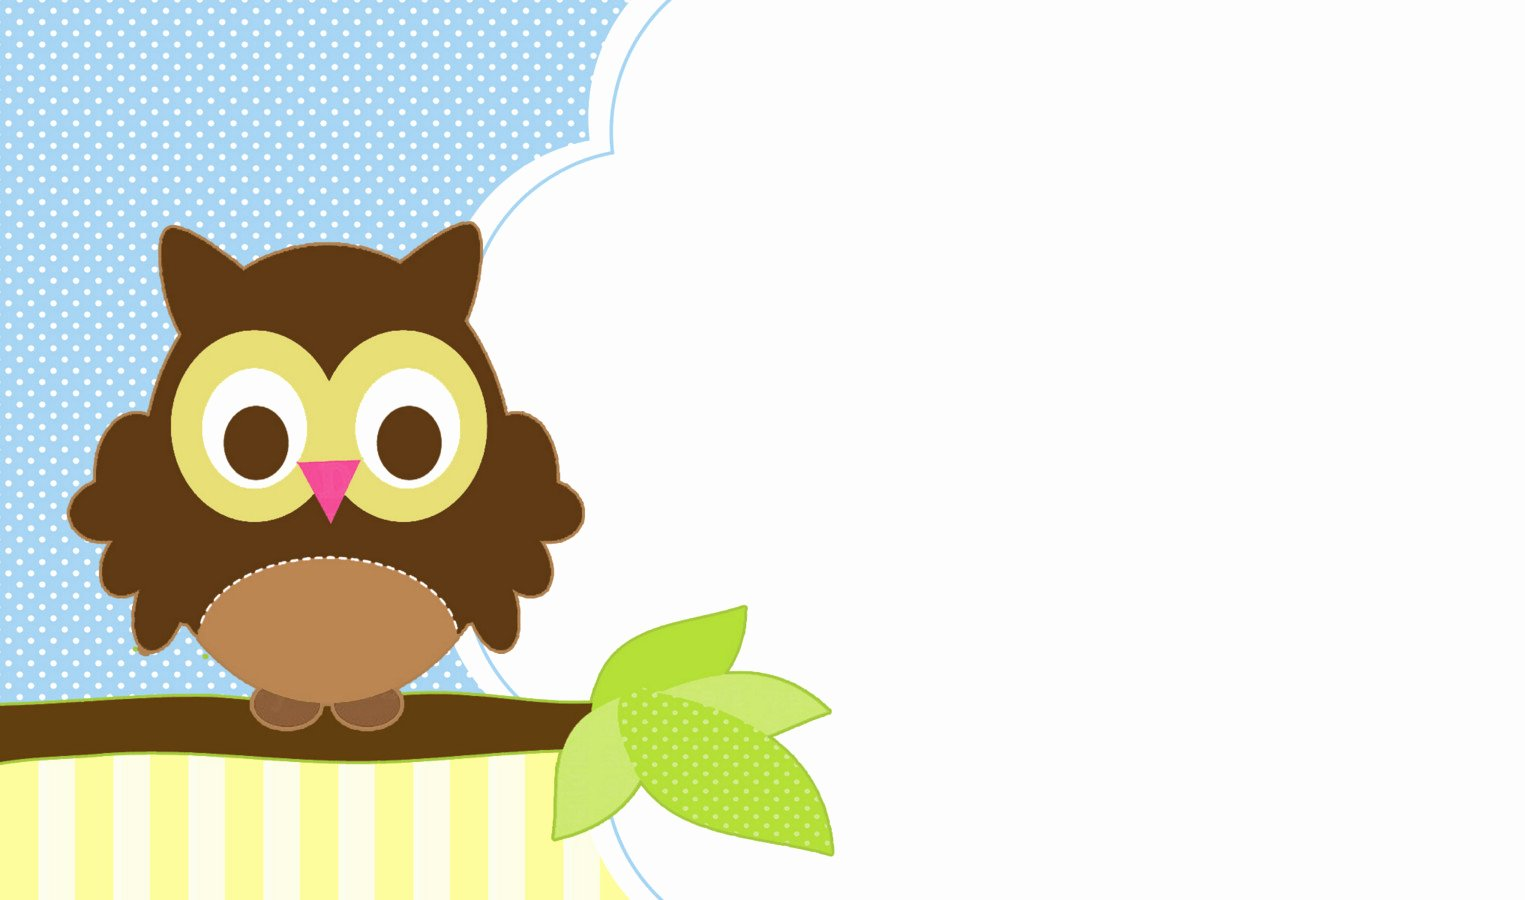 Owl Template for Baby Shower Fresh Free Owl themed Baby Shower Templates for Boy – Home Party